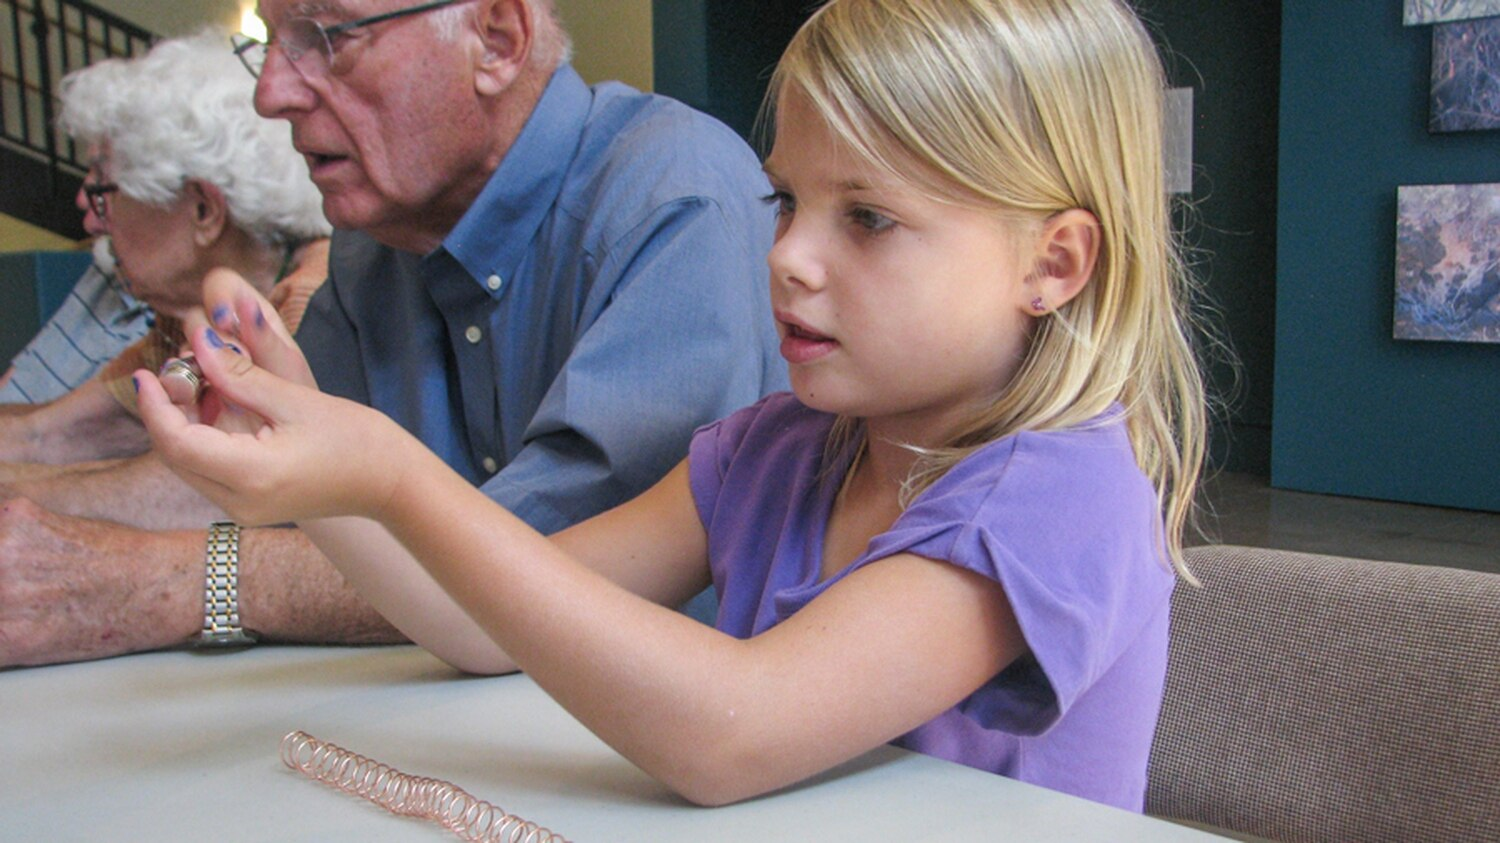 Riley Marks, age 6, and her grandfather Manny Marczak participated in an experiment to demonstrate magnetic levitation as part of the New Mexico History Museum's monthly Making History hands-on program.